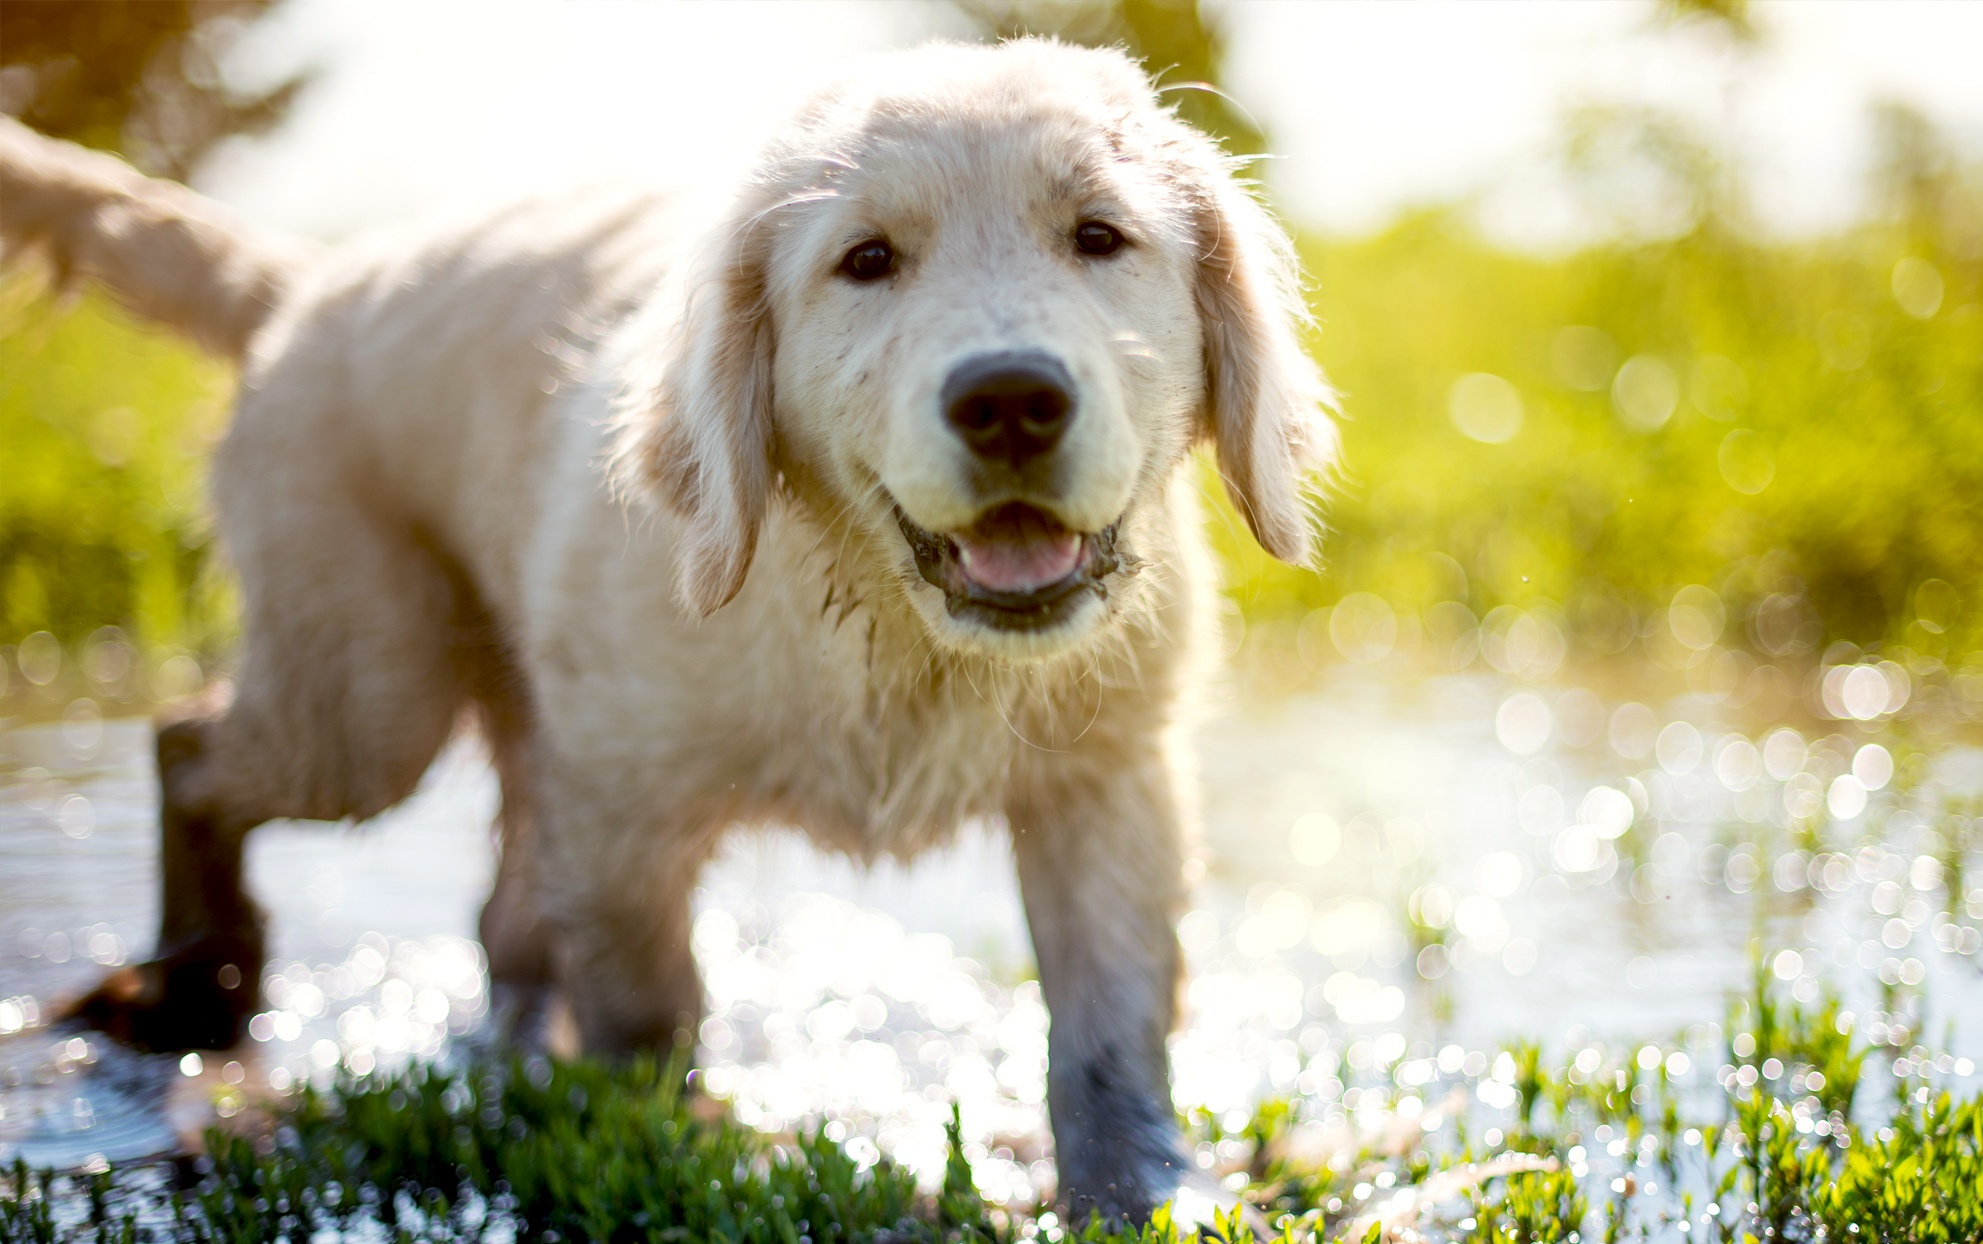 Golden Retriever puppy playing in the mud